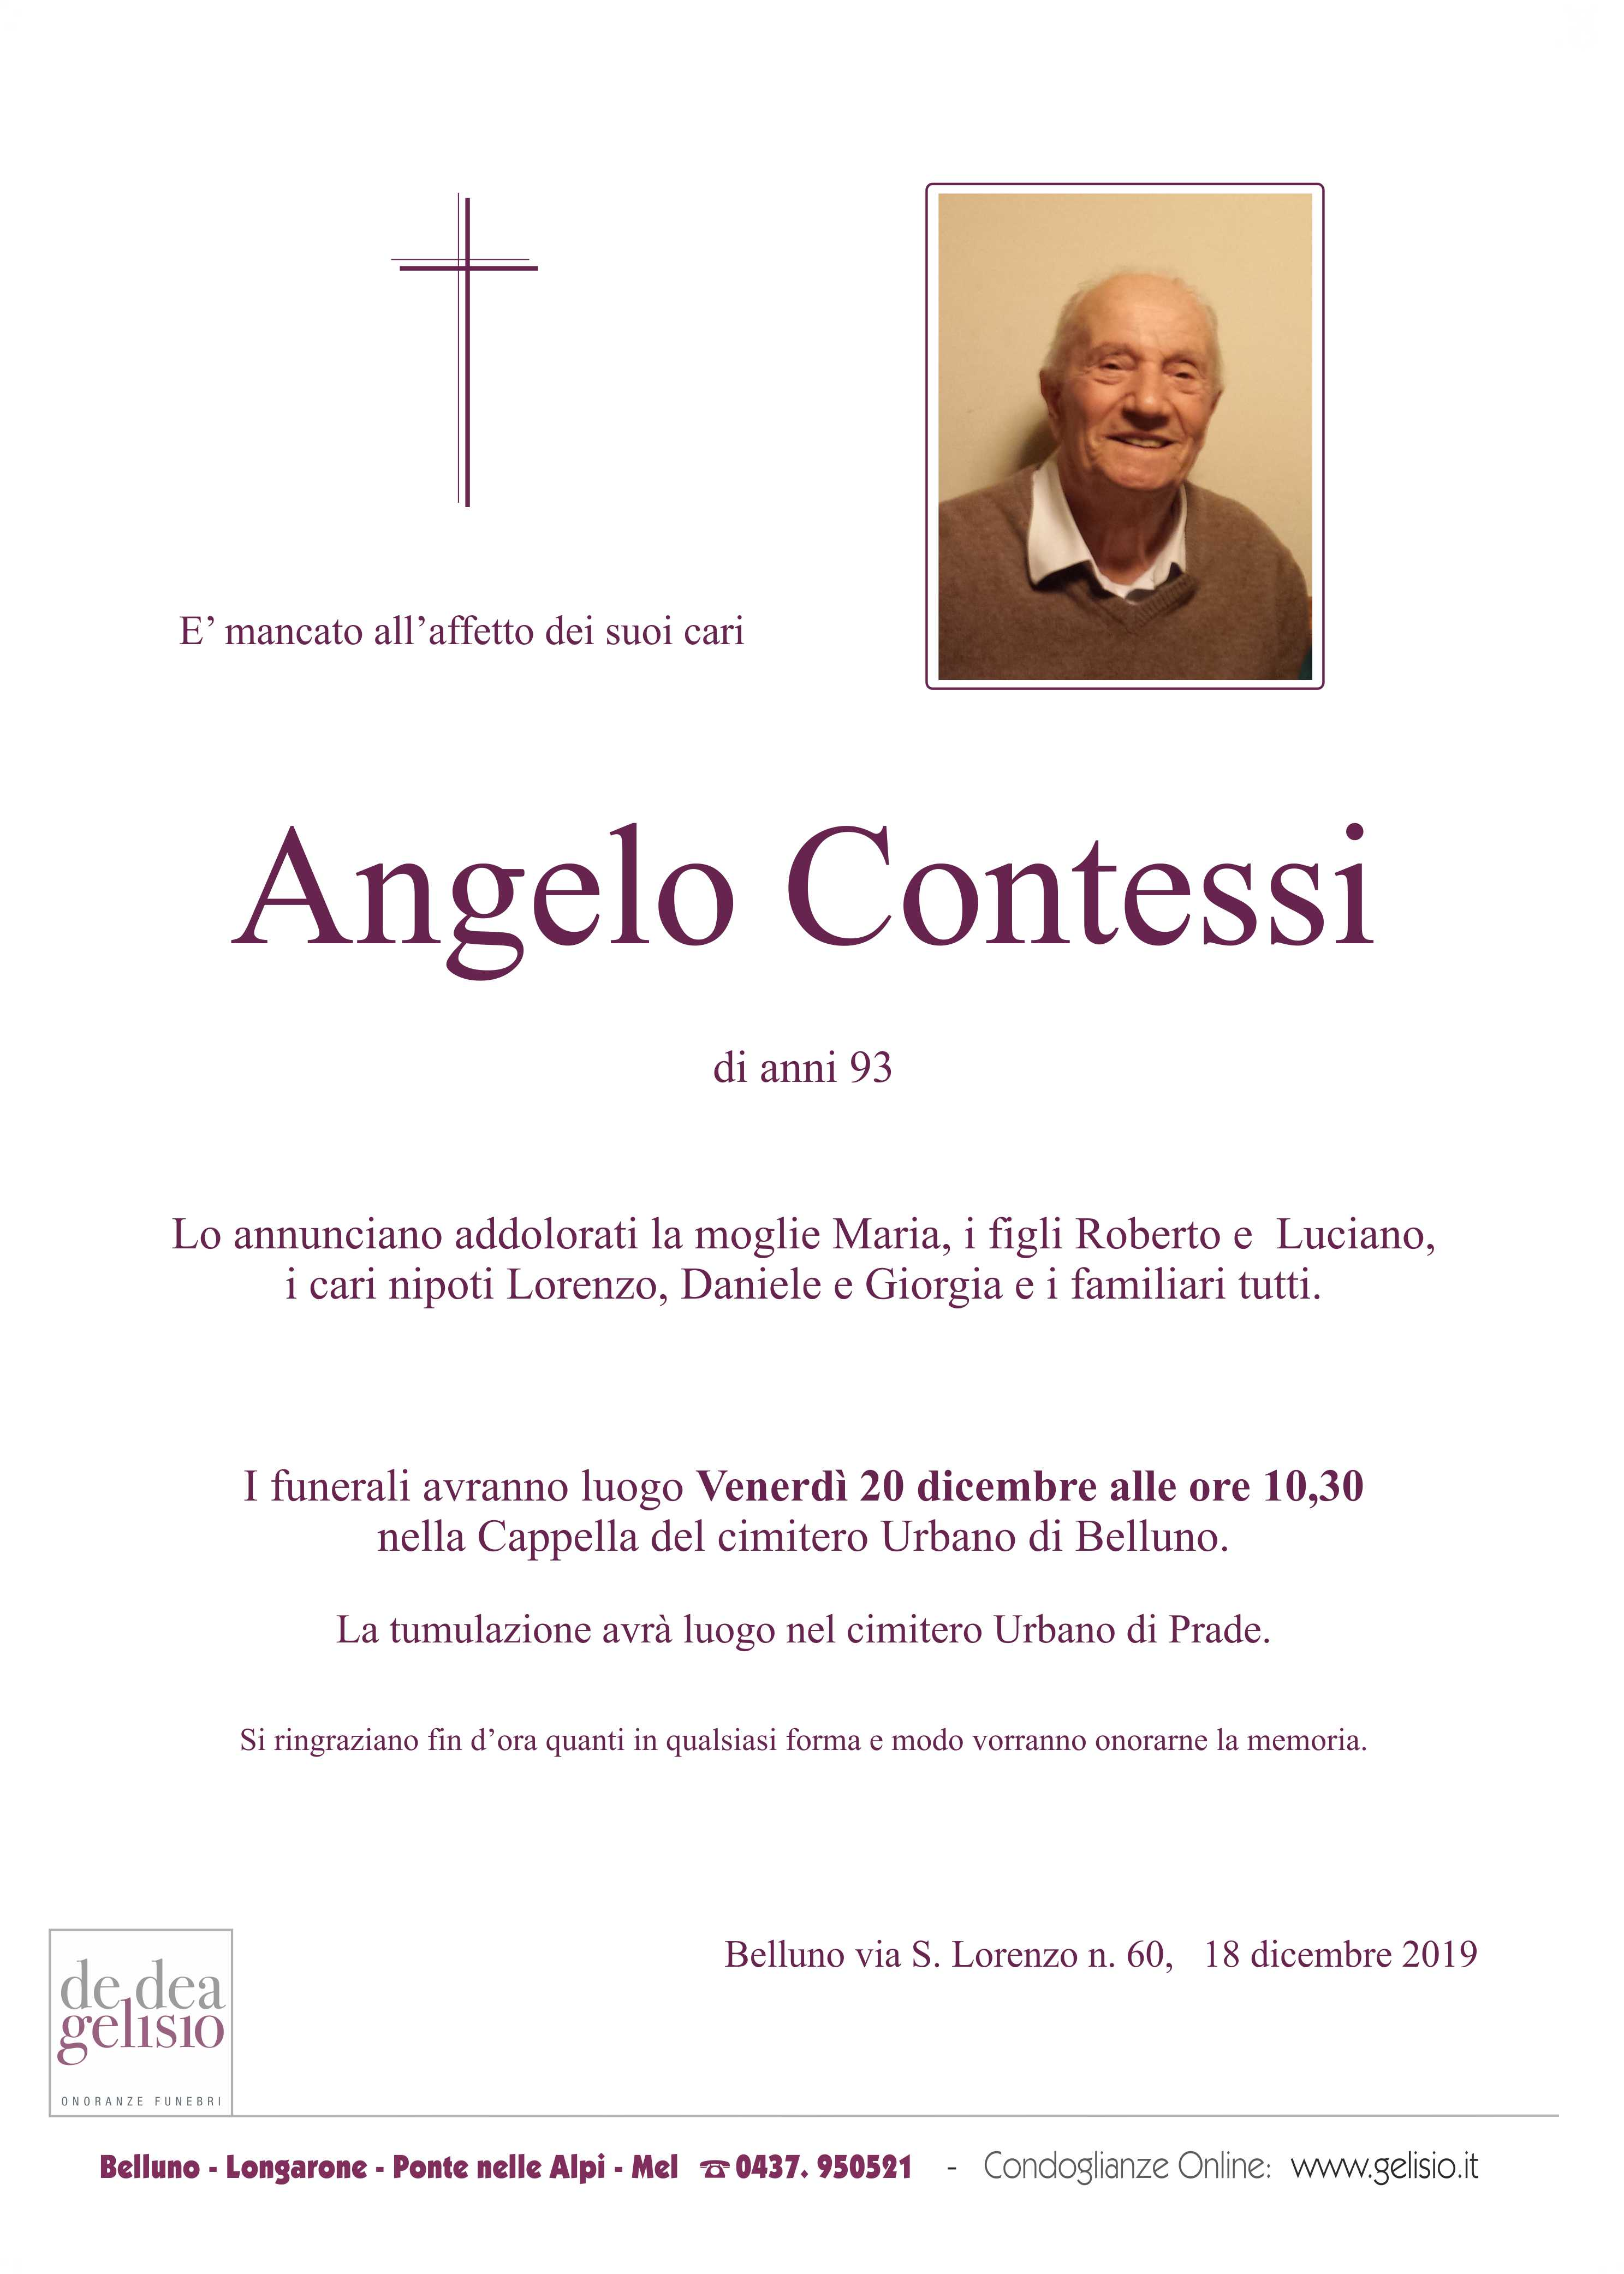 Contessi_Angelo.jpg